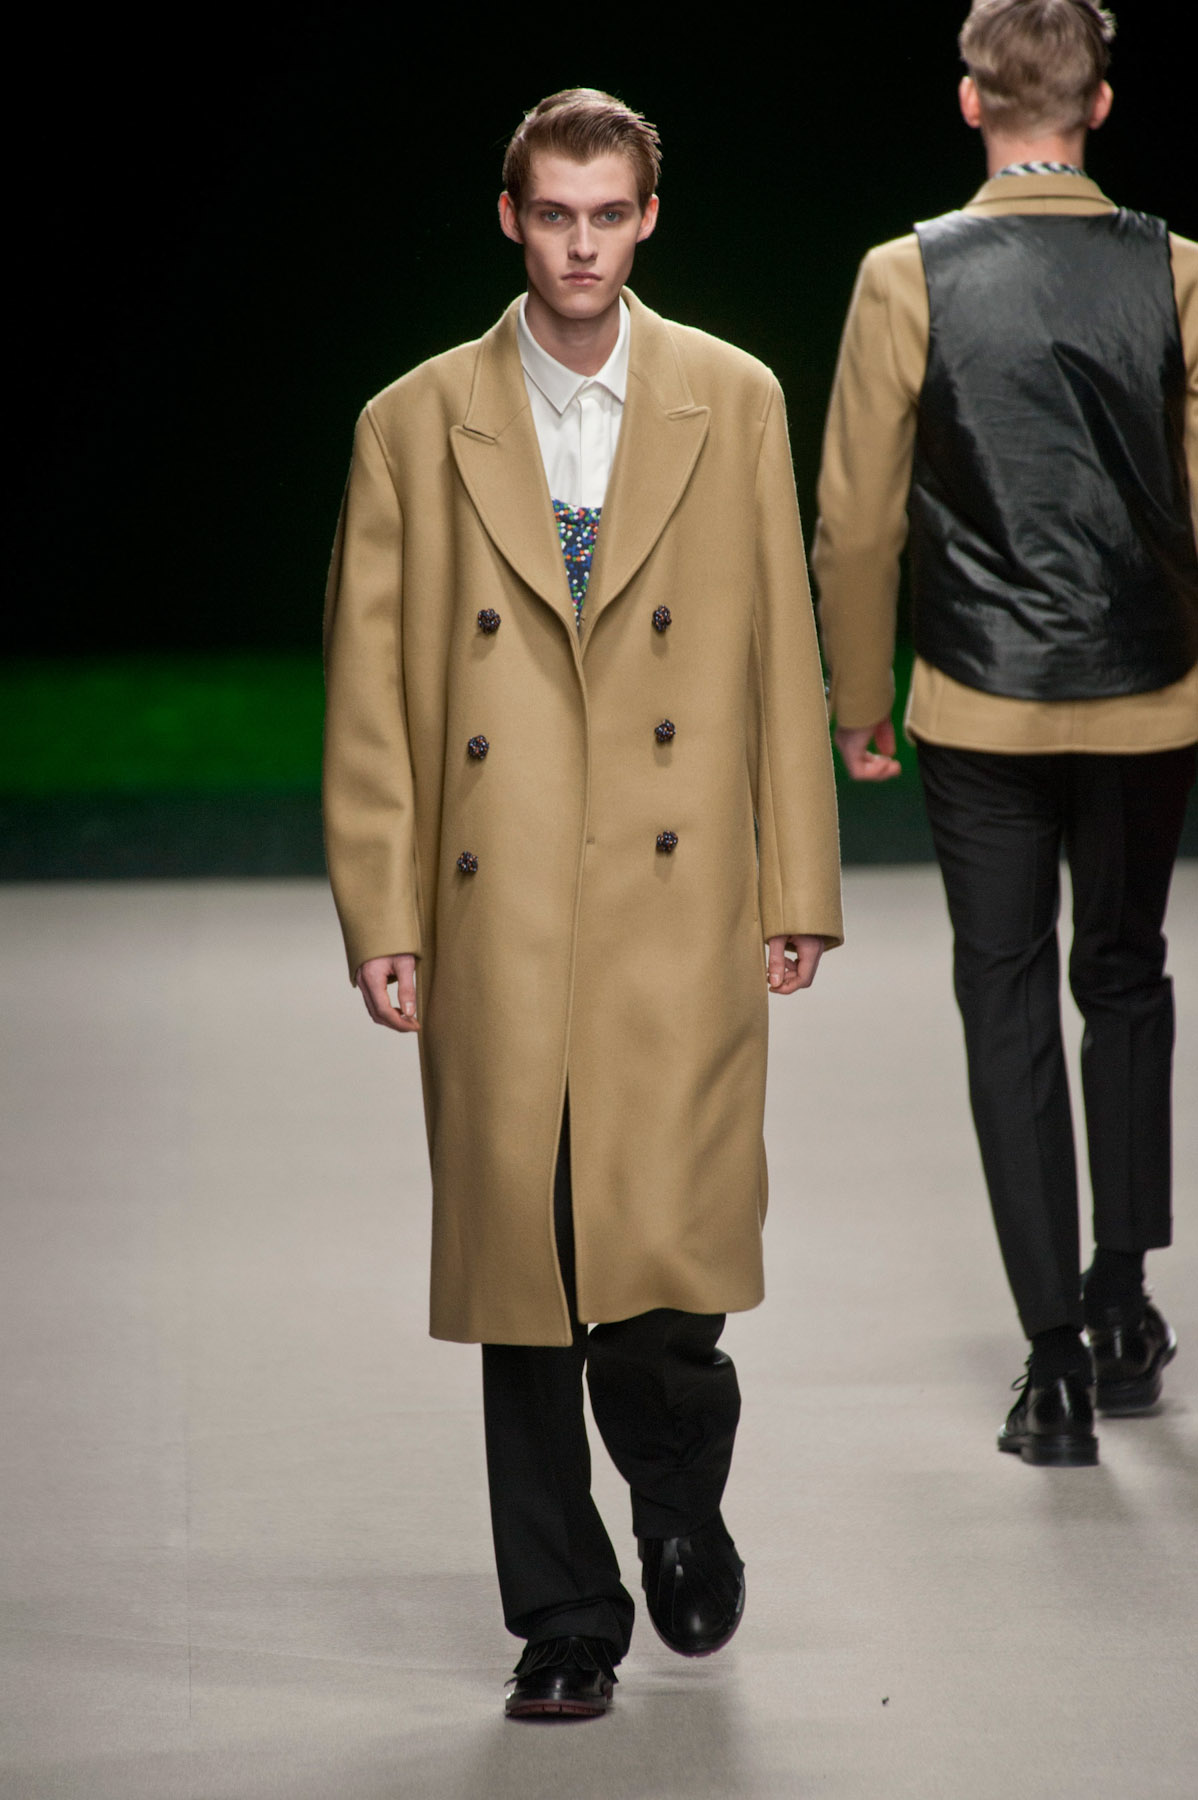 vanassche-MEN-paris-inv2014-30